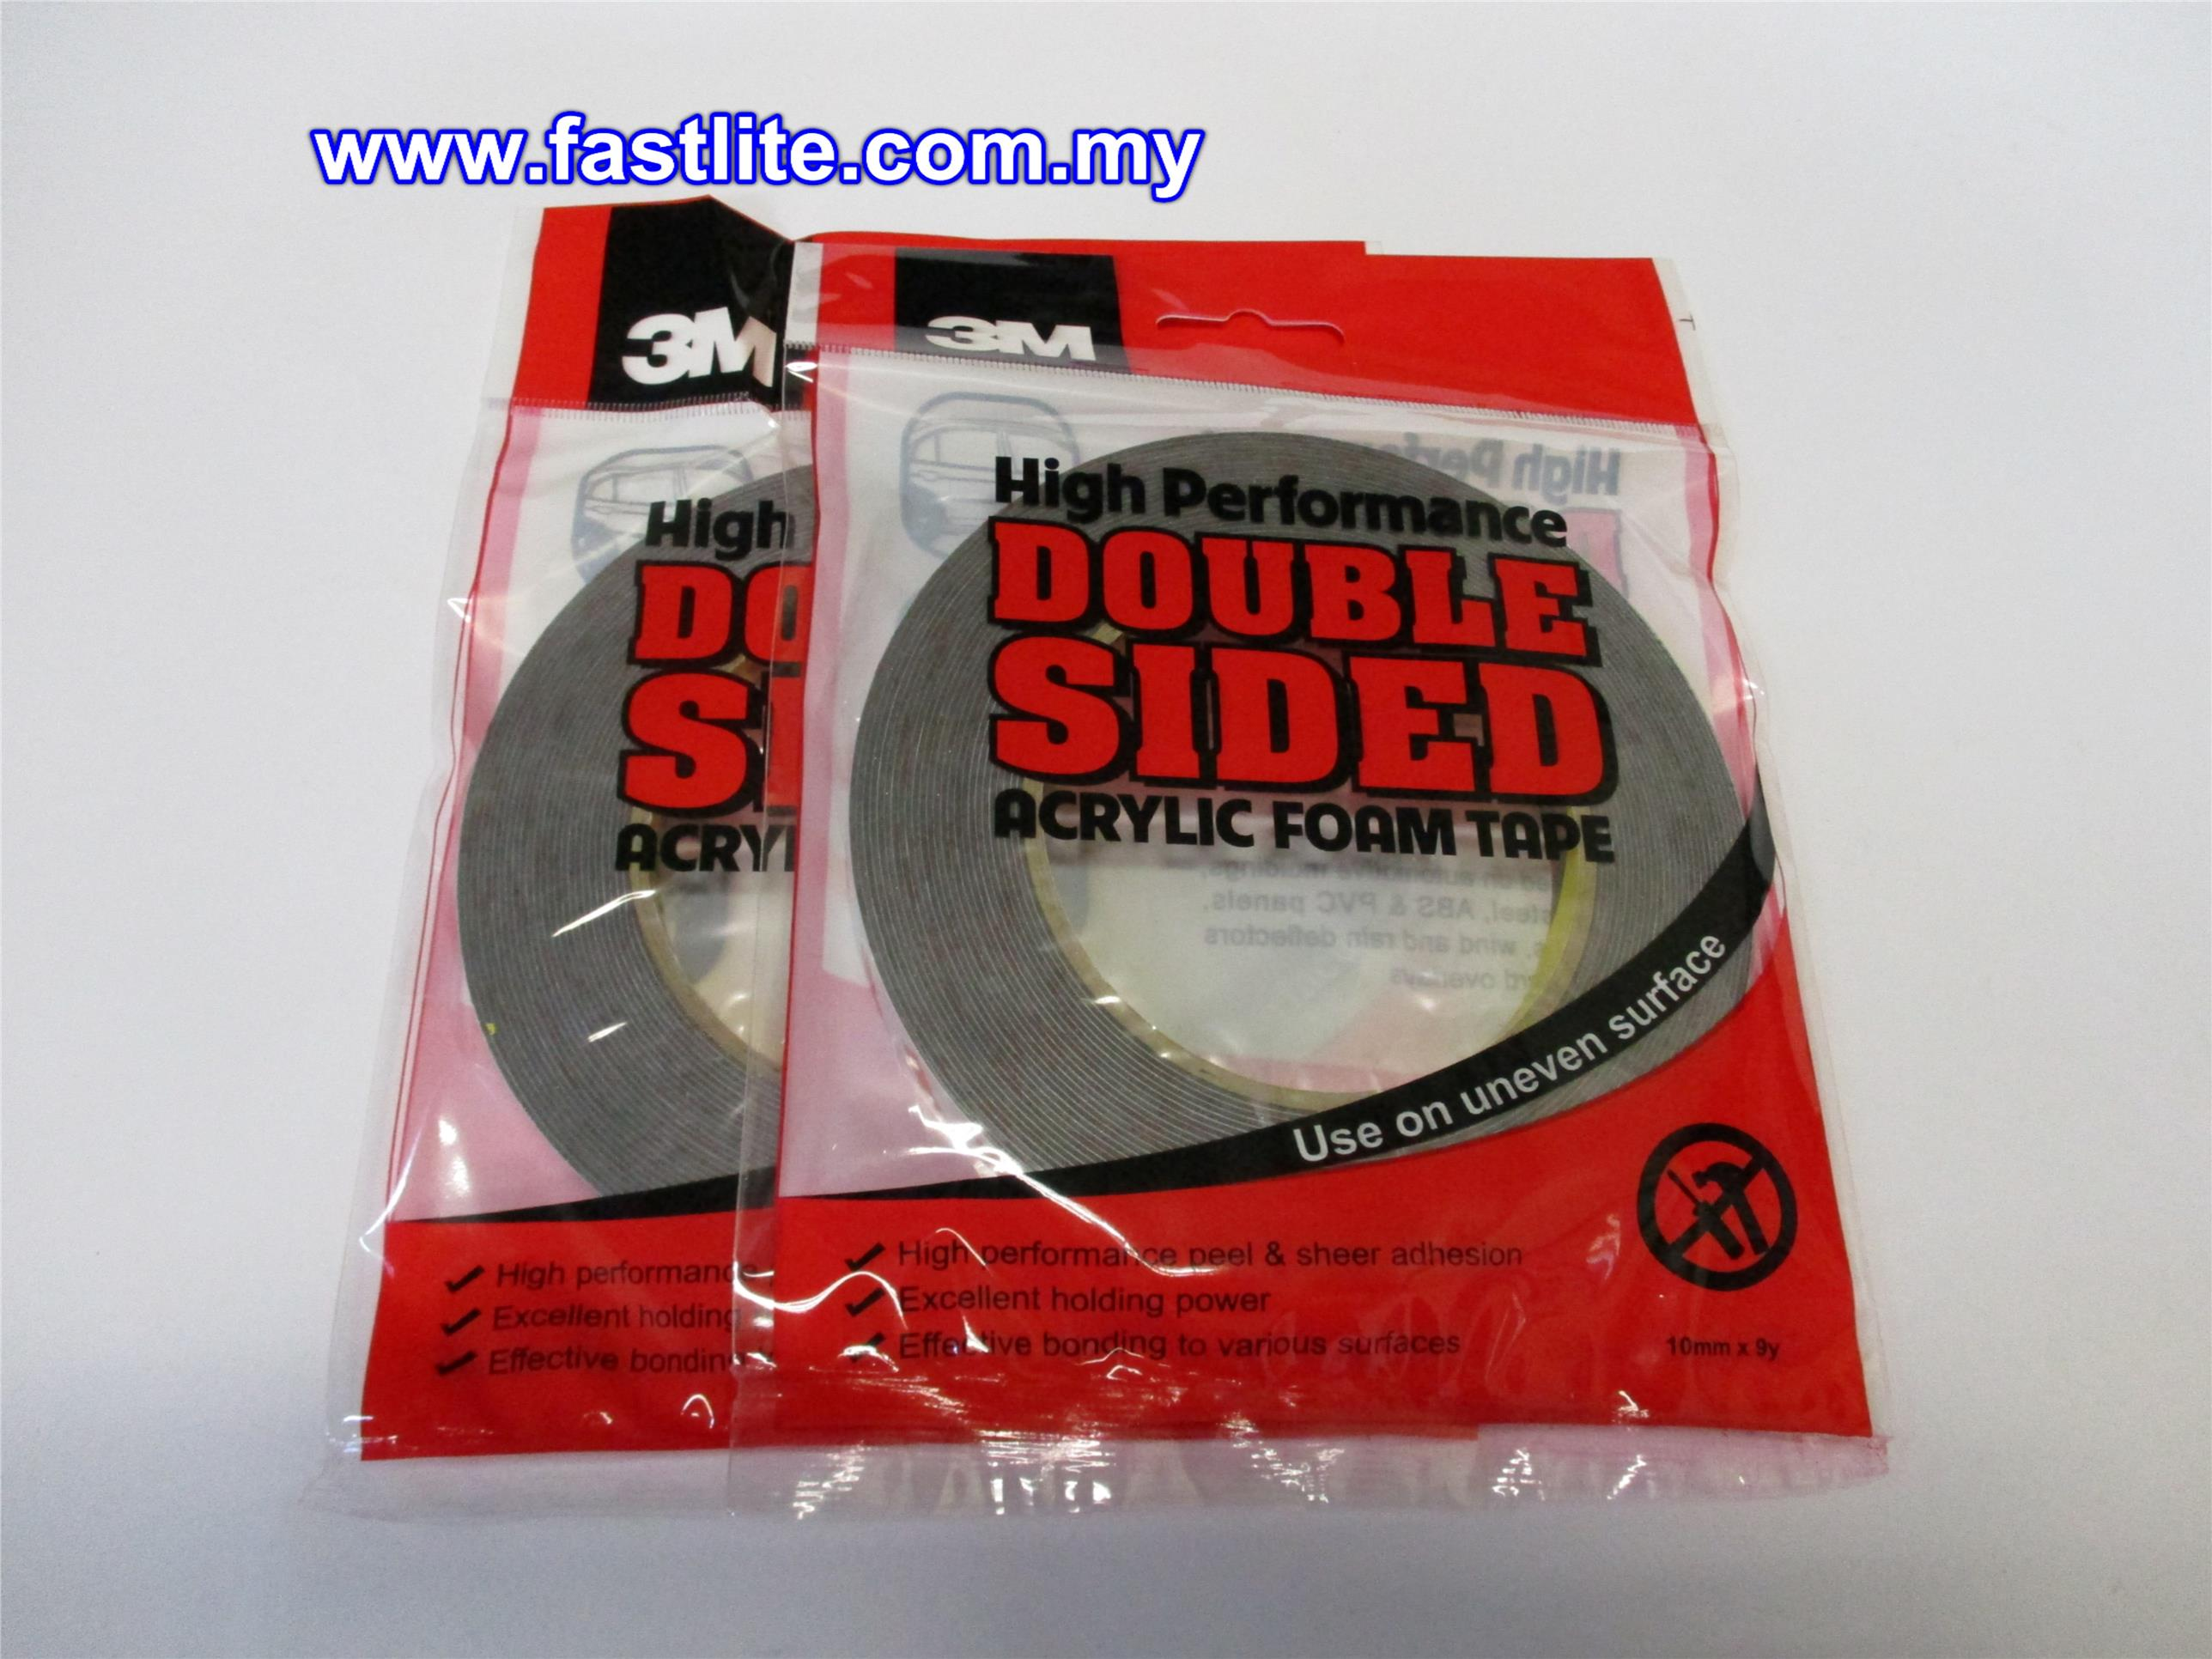 2 x 3m scotch doublesided foam heavy duty adhesive tape 10mm width